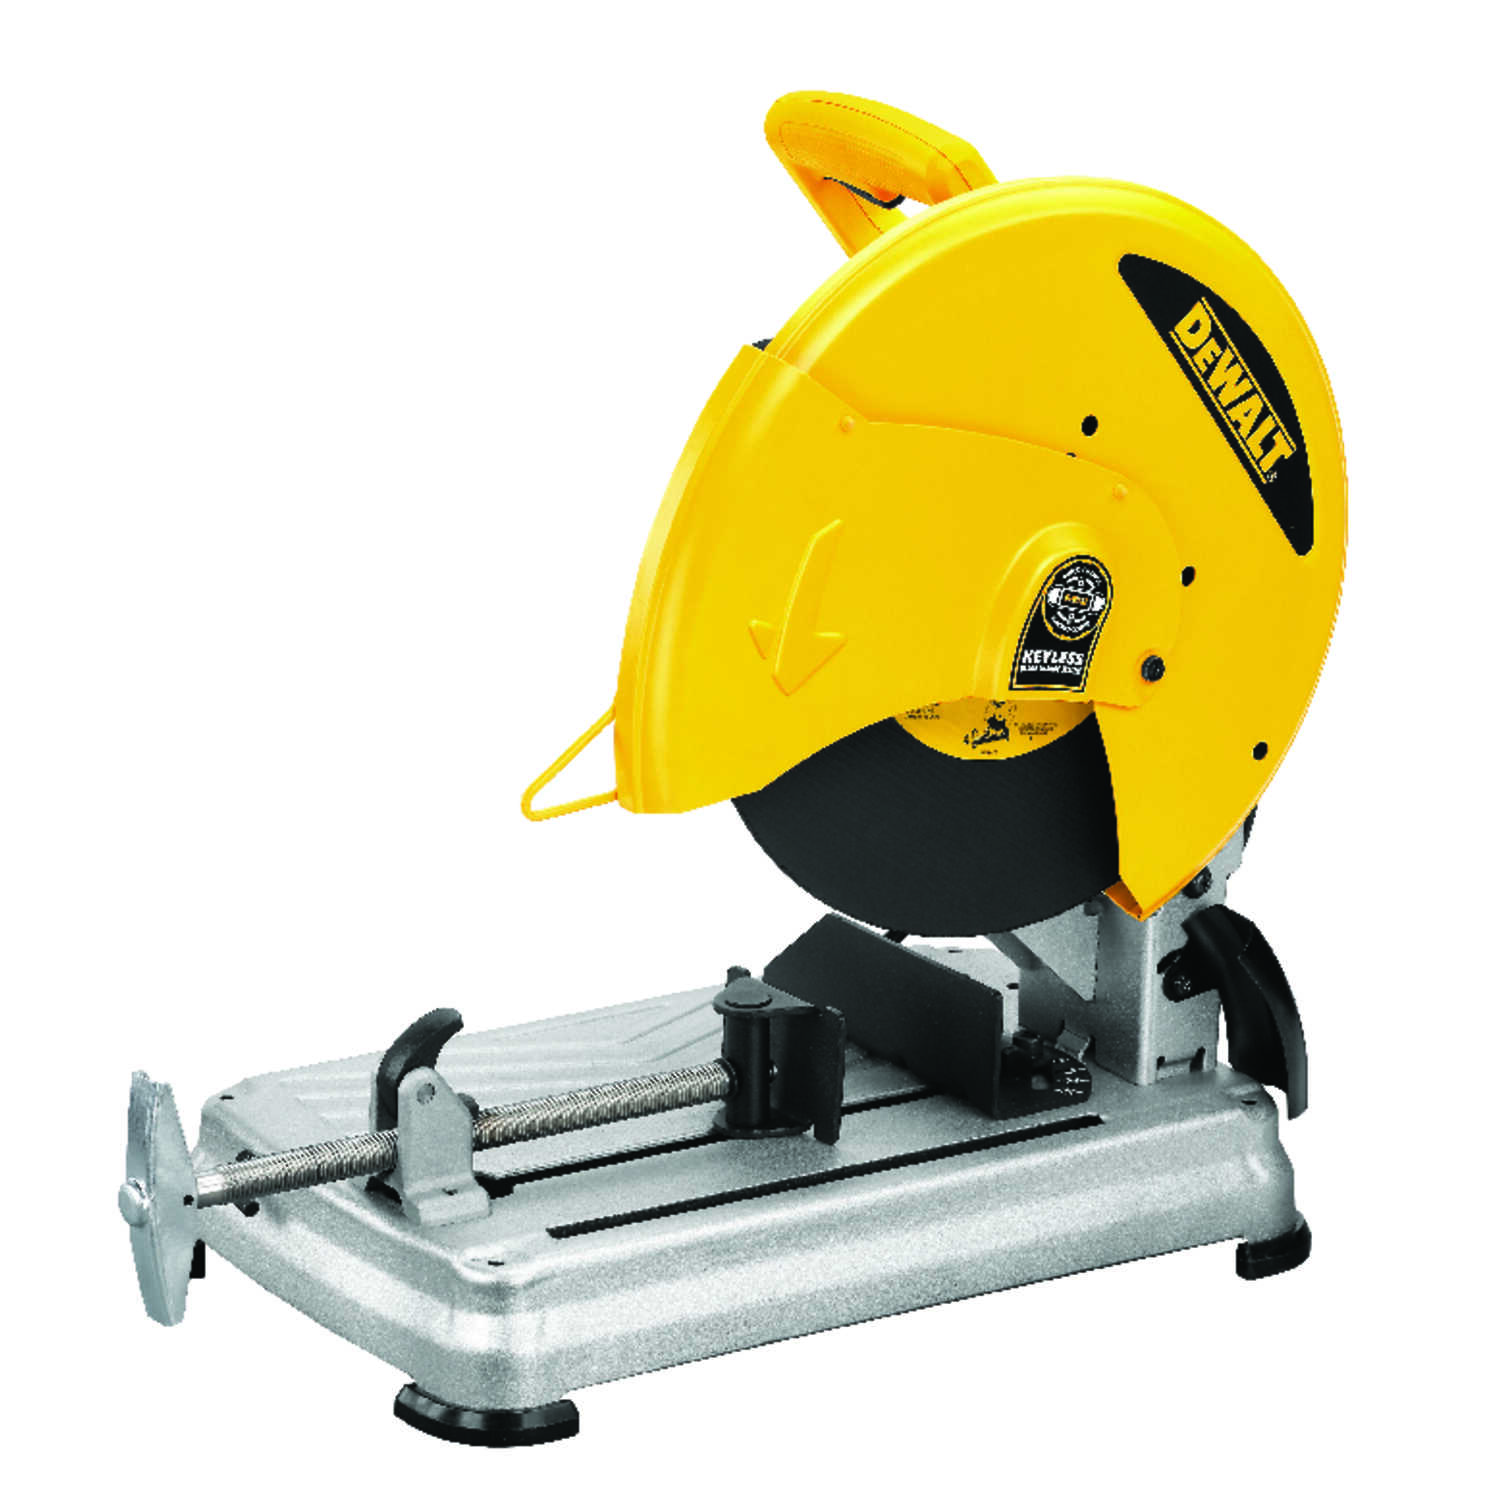 DeWalt  Corded  Chop Saw  15 amps 5-1/2 hp 14 in. 4000 rpm